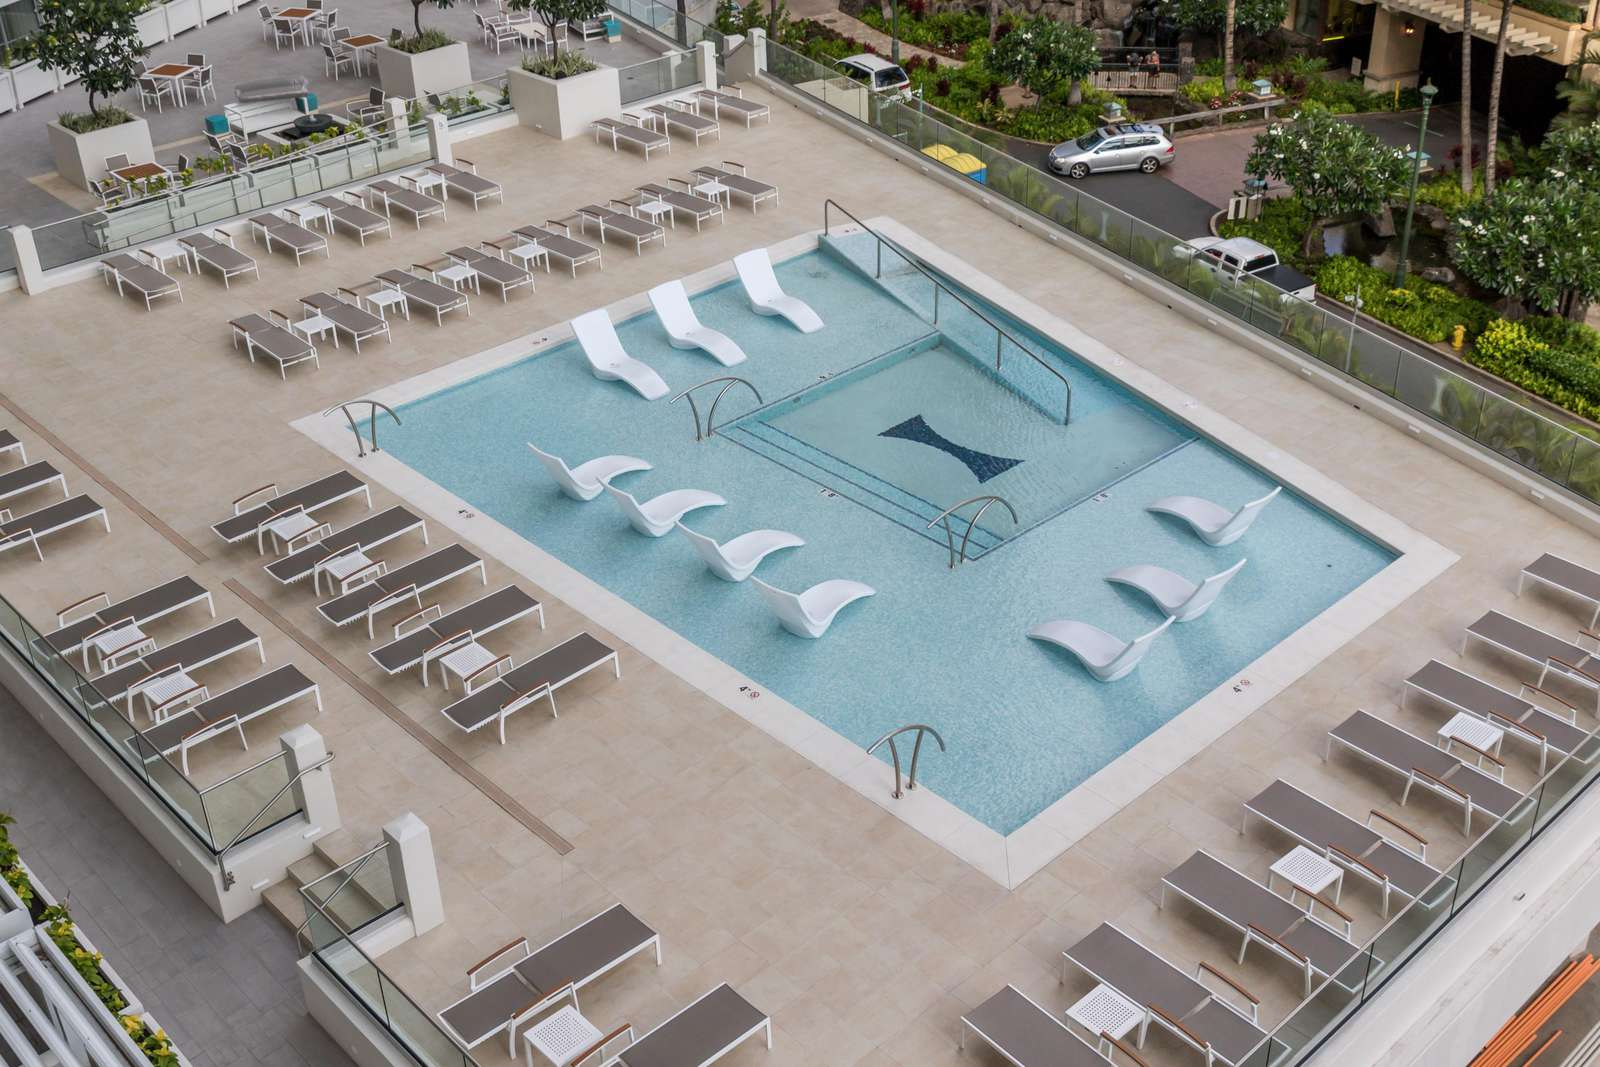 View of wading pool from room